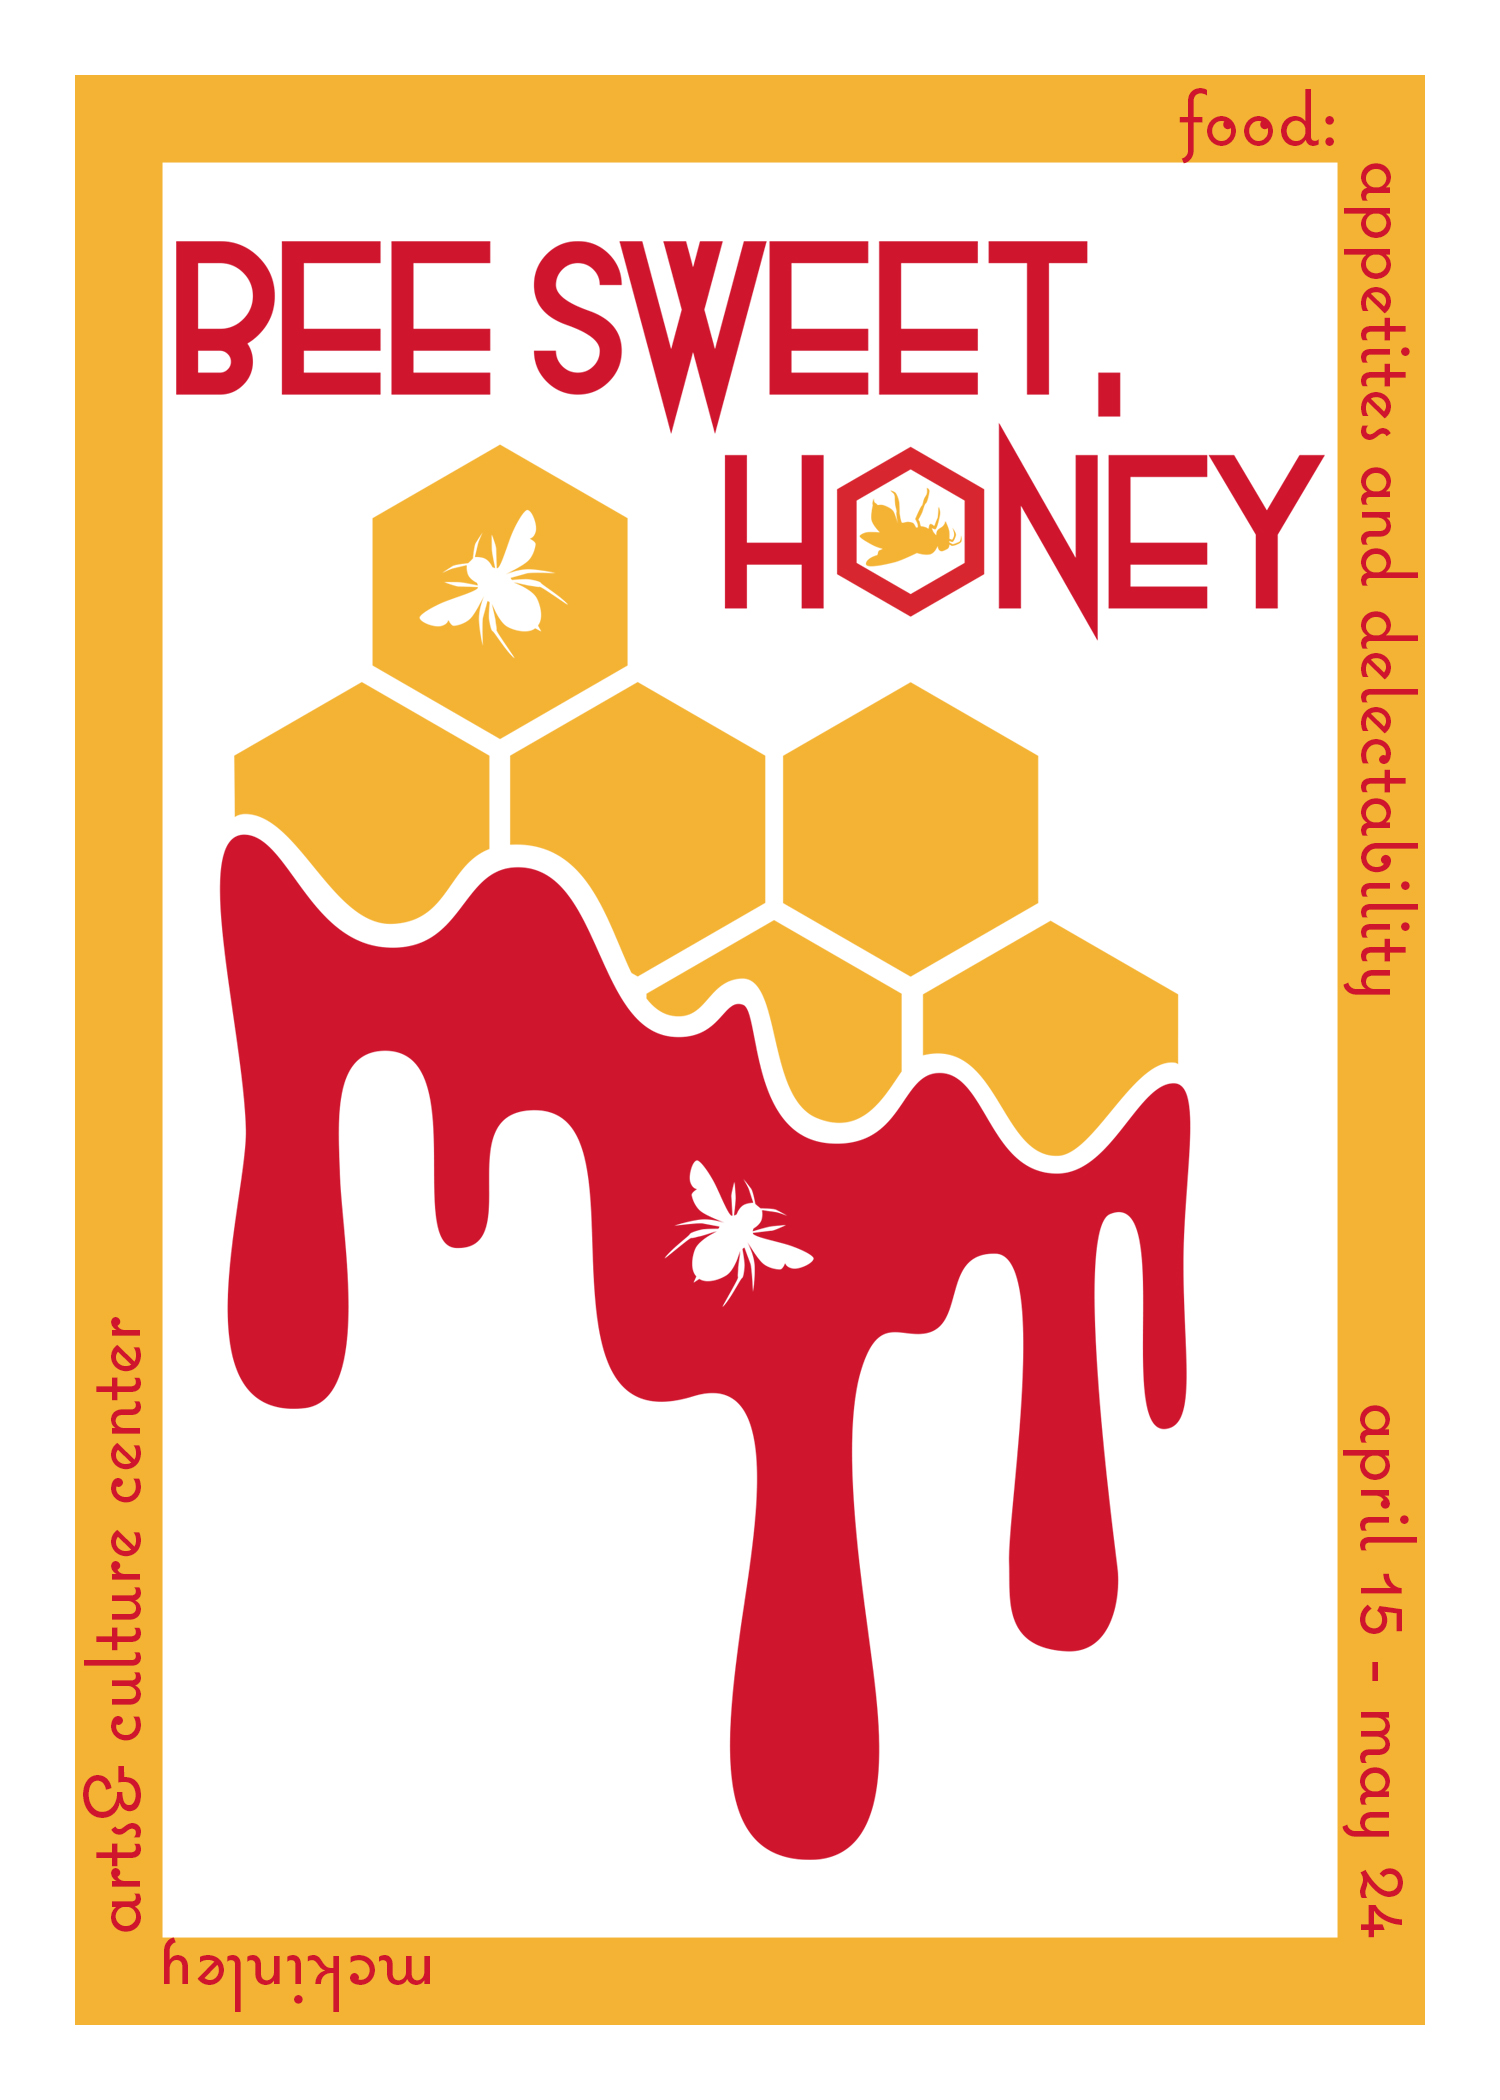 A print in yellow and red with a honeycomb pattern and dripping honey.  Red text says be sweet honey.